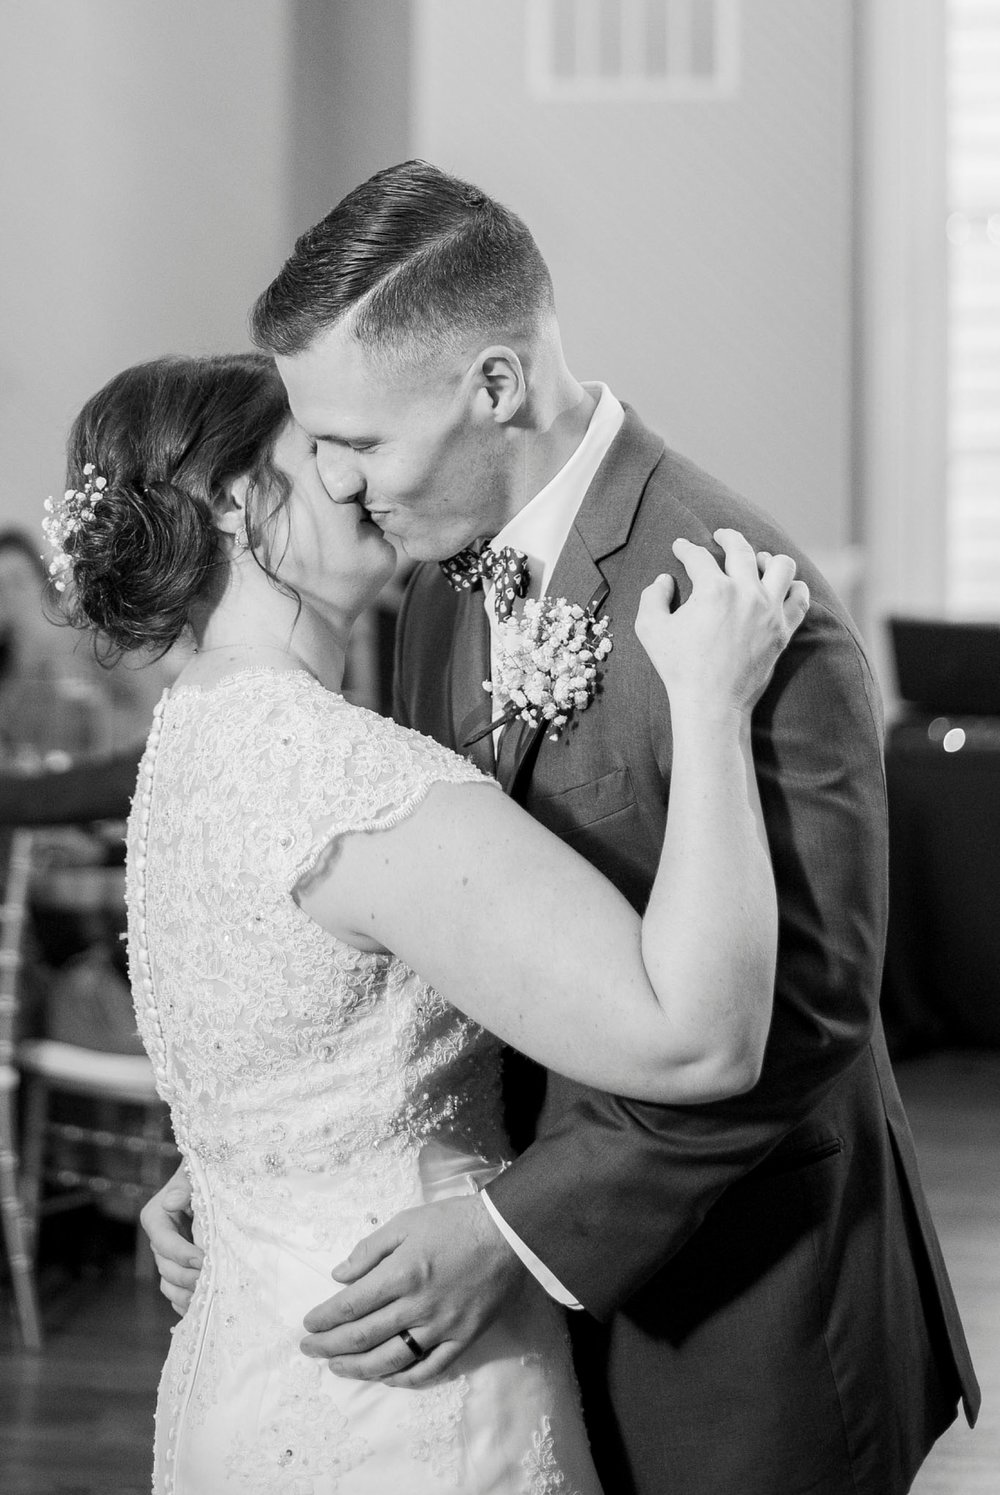 Trescaon8th_DowntownLynchburg_Virginiaweddingphotographer 89.jpg